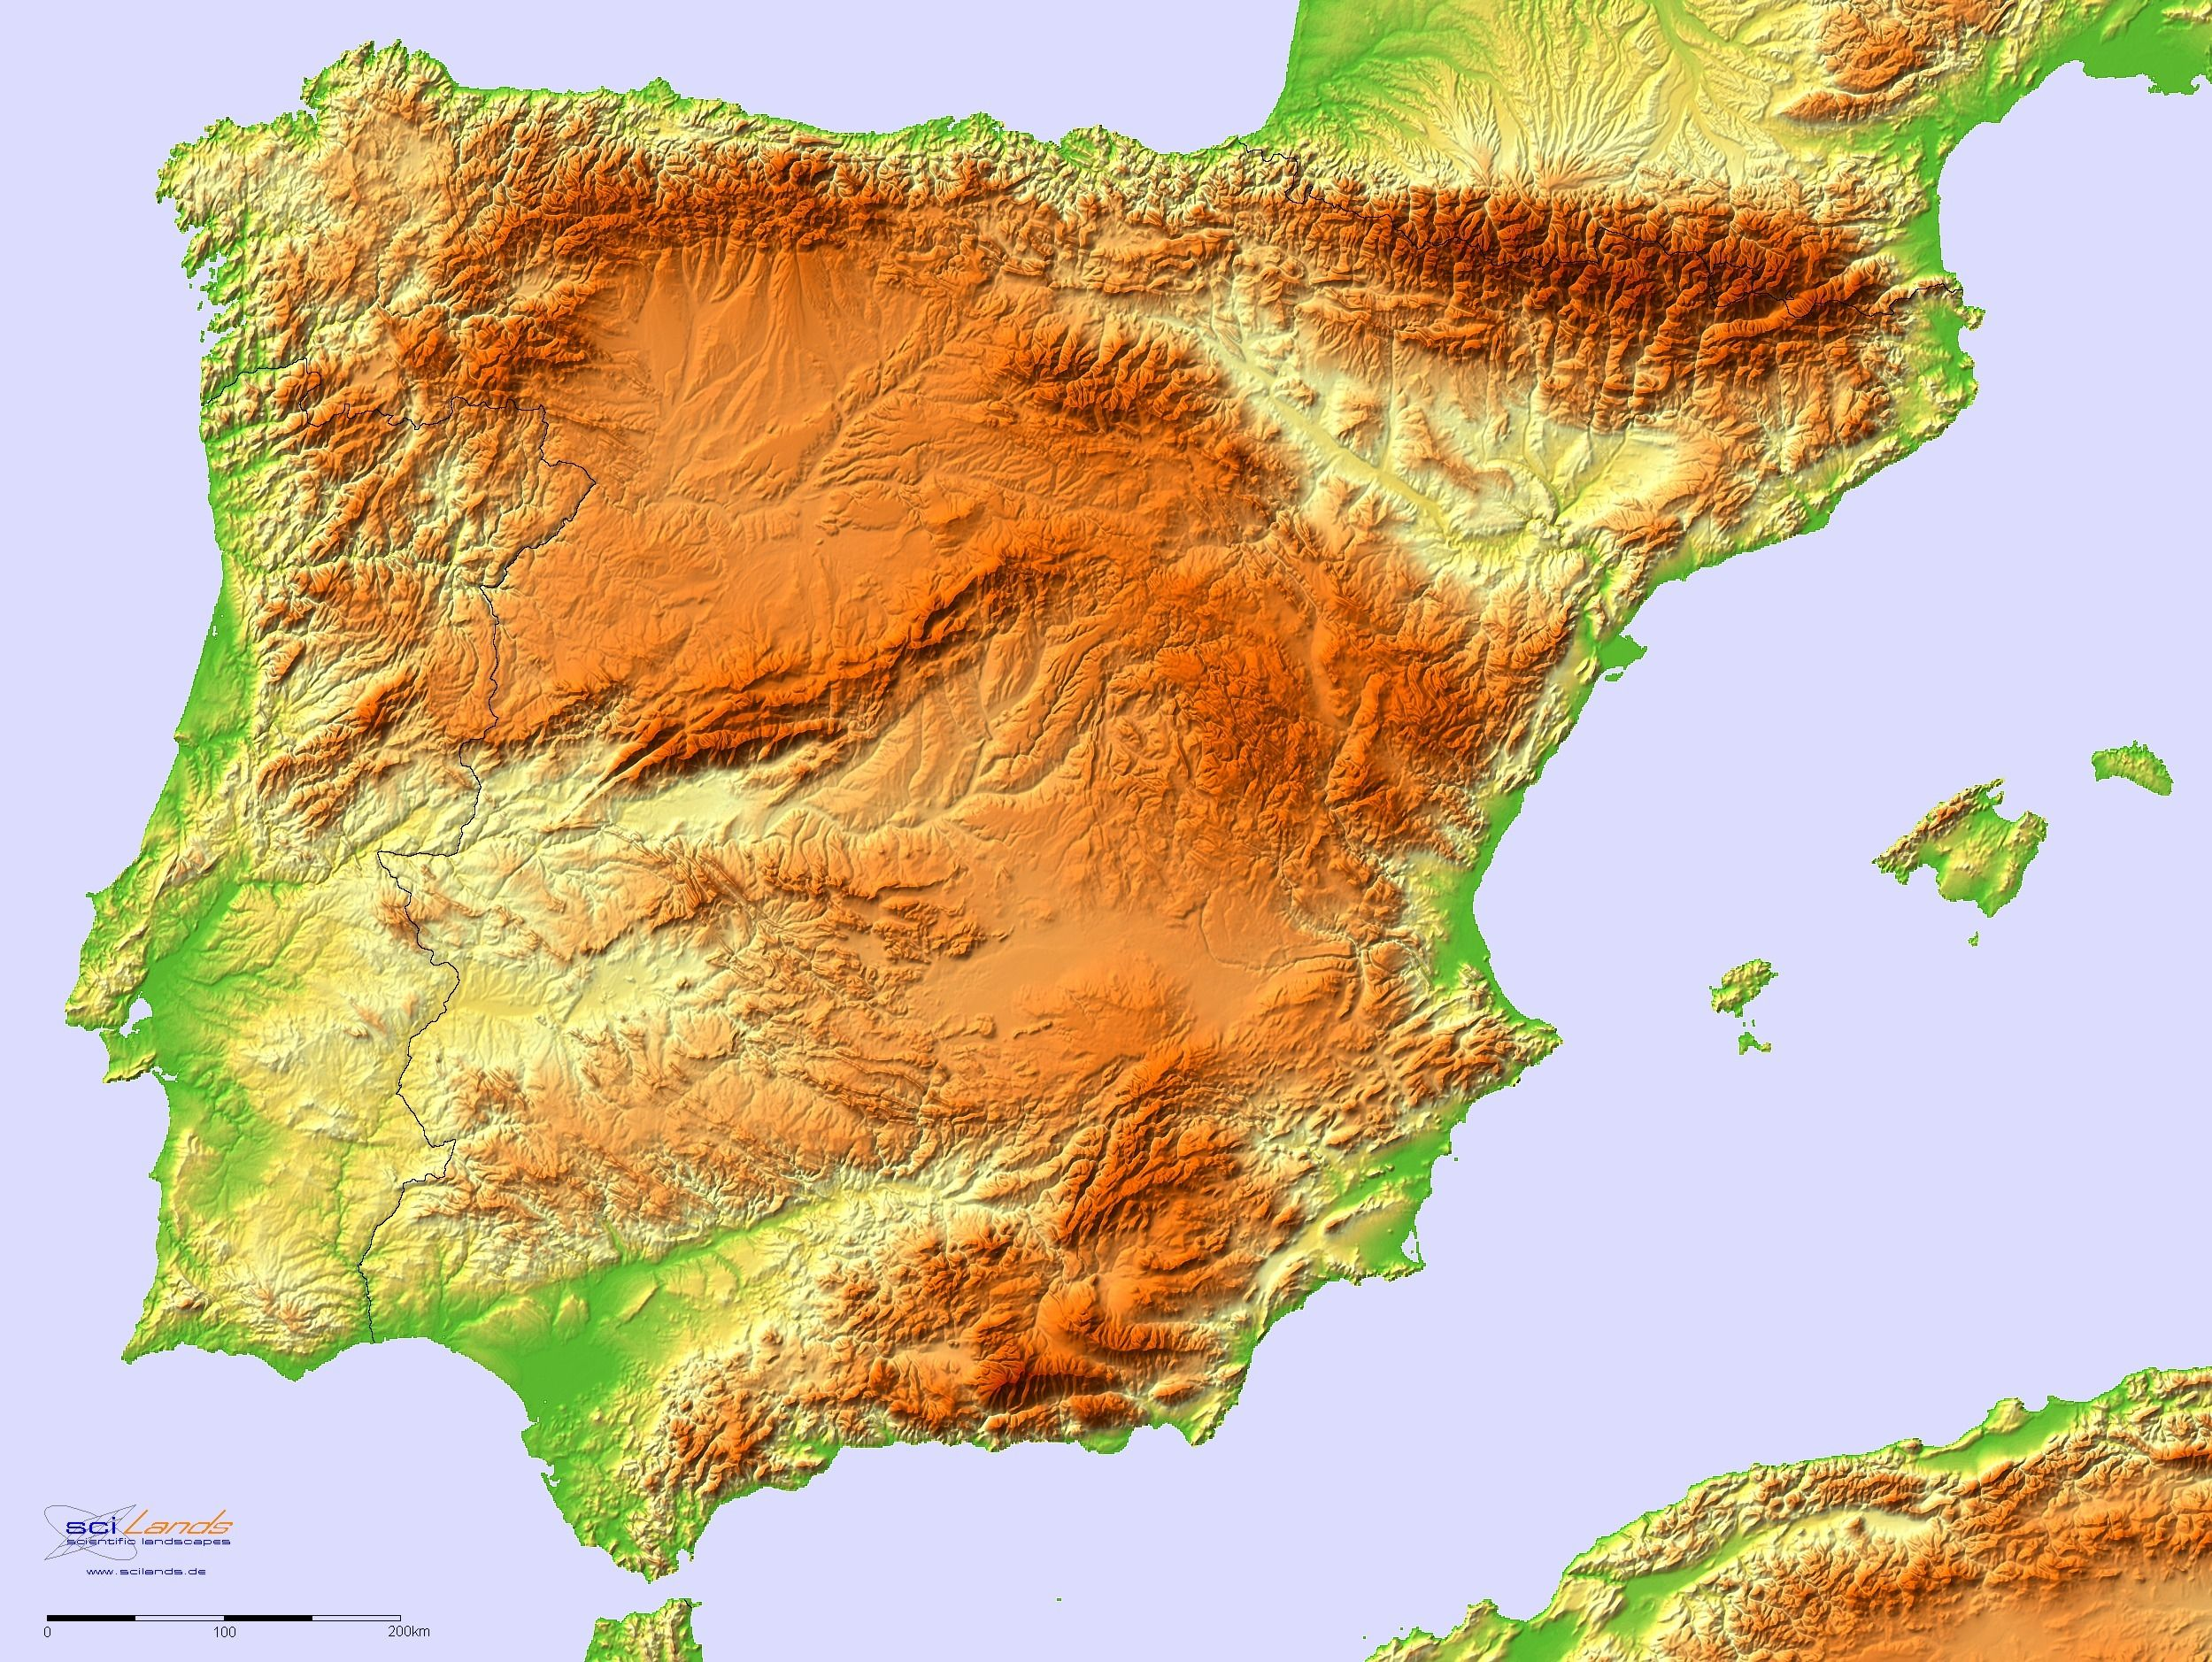 A Detailed Topographic Map Of The Iberian Peninsula By Sci Lands - Portugal map iberian peninsula